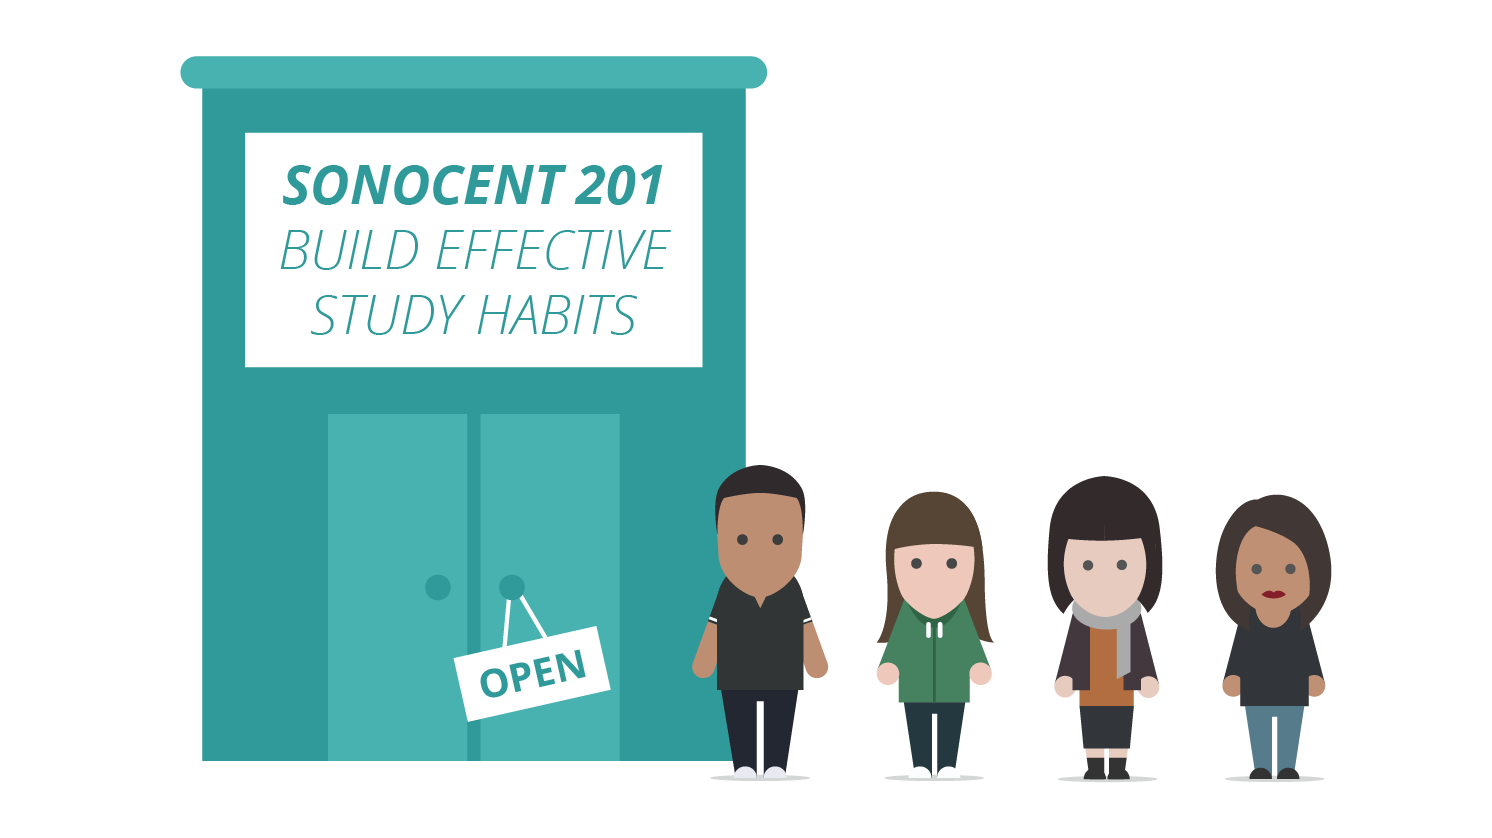 Sonocent 201. Build effective study habits